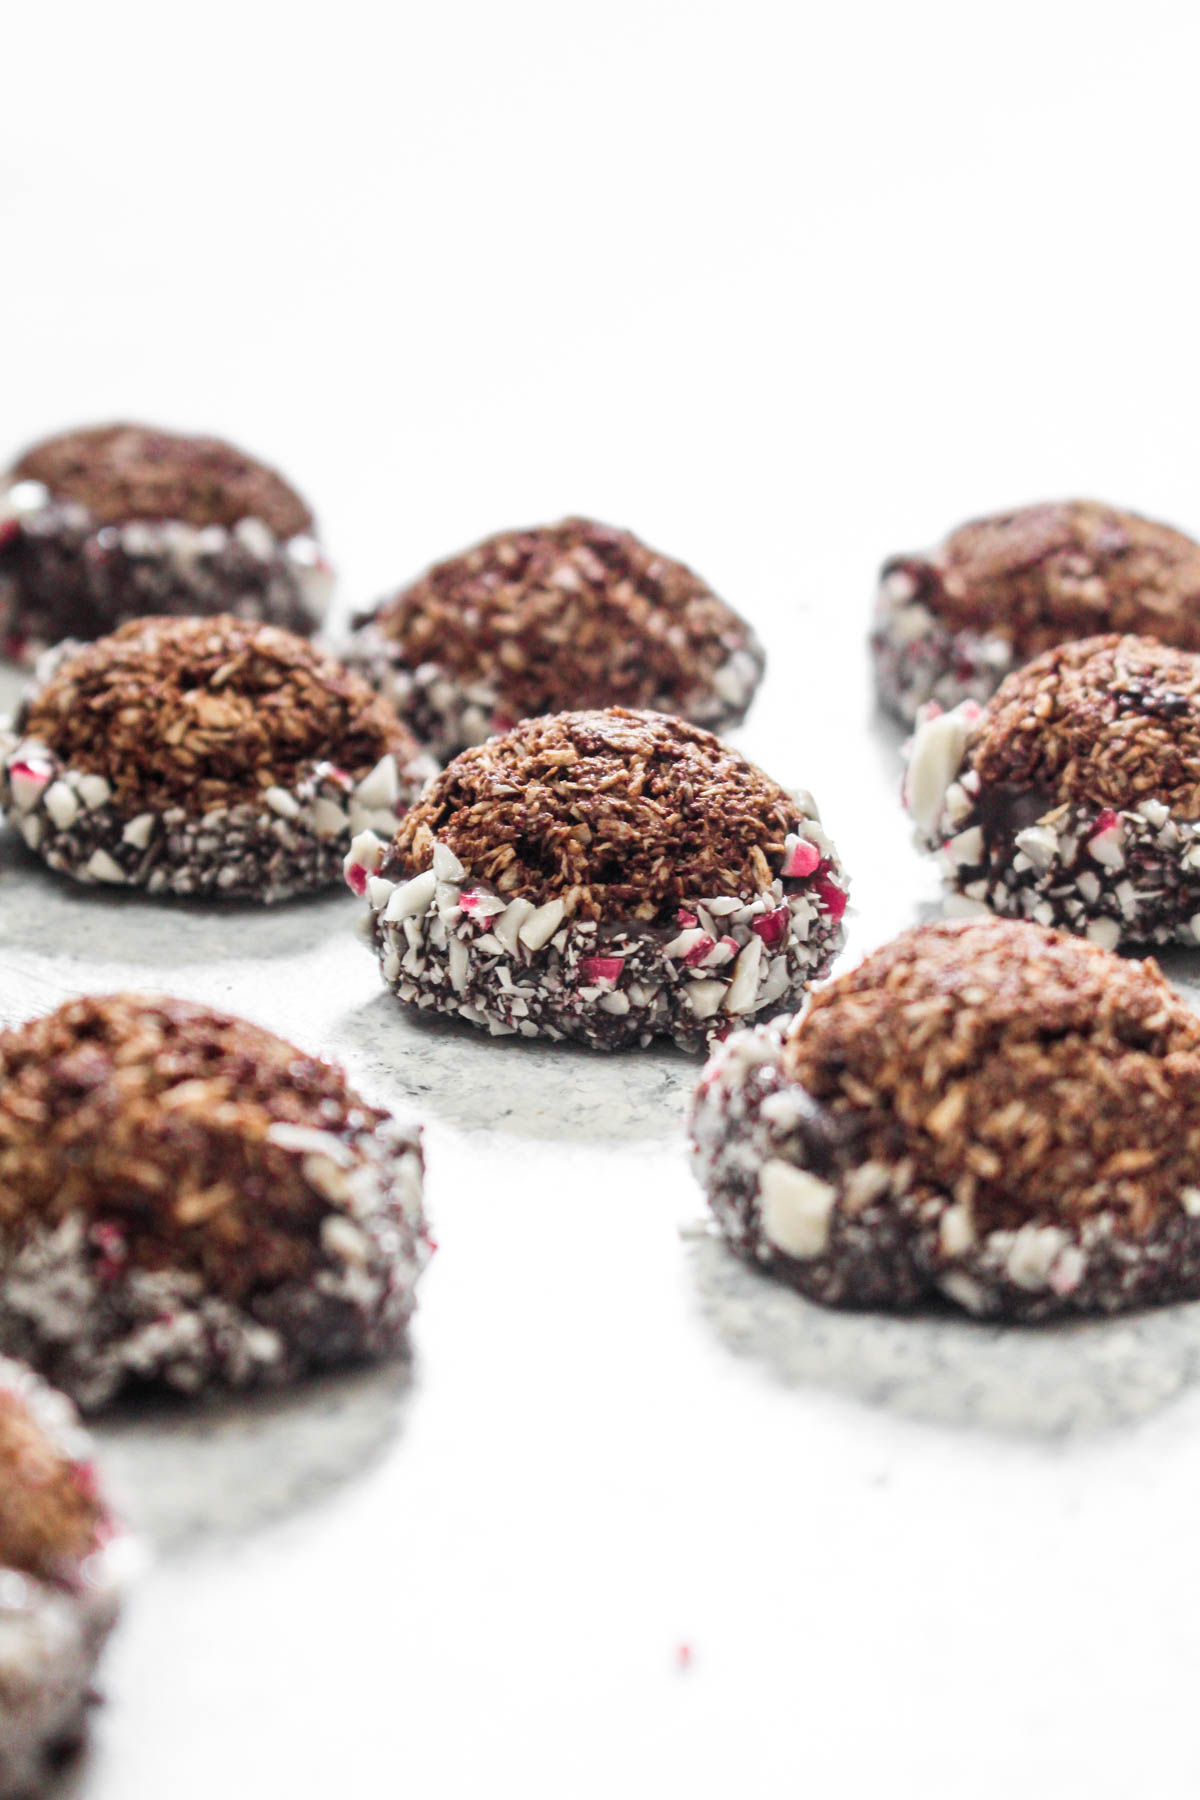 Chocolate Peppermint Macaroon Cookies are an easy 4 ingredient recipe that is made with wholesome and healthy ingredients! An optional dunk in chocolate and crushed candy canes makes these cookies a decadent dessert! | CatchingSeeds.com